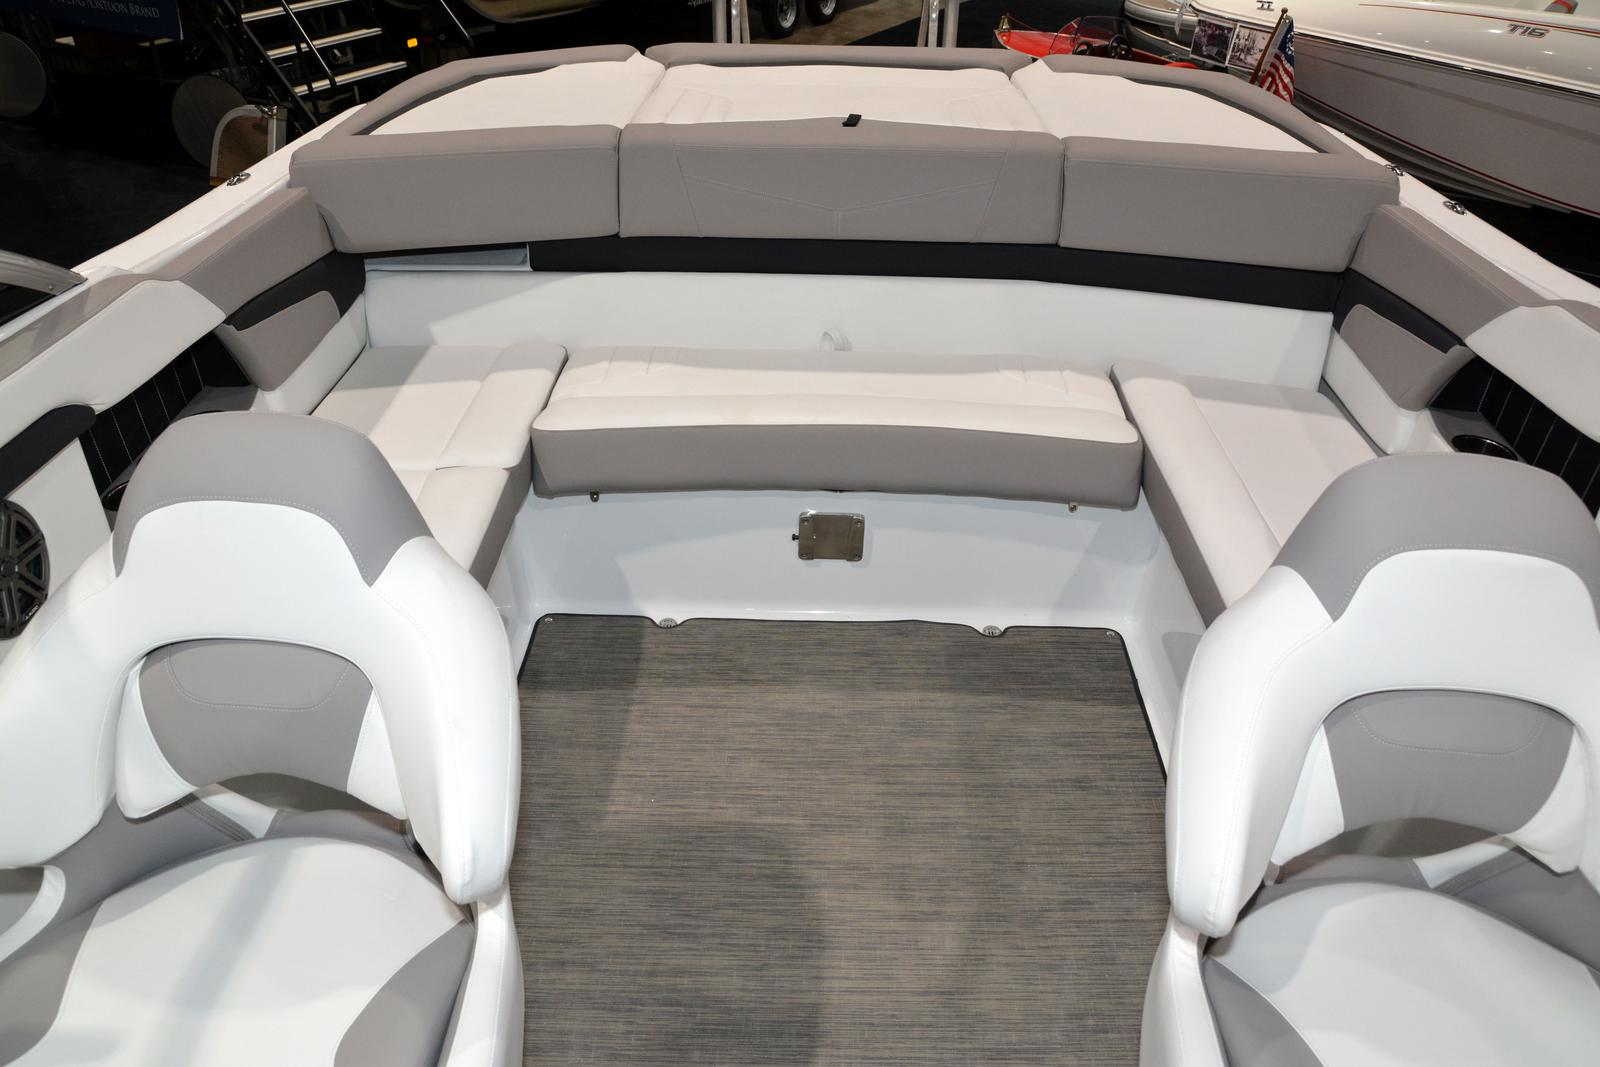 2020 Four Winns boat for sale, model of the boat is Horizon 230 & Image # 14 of 14